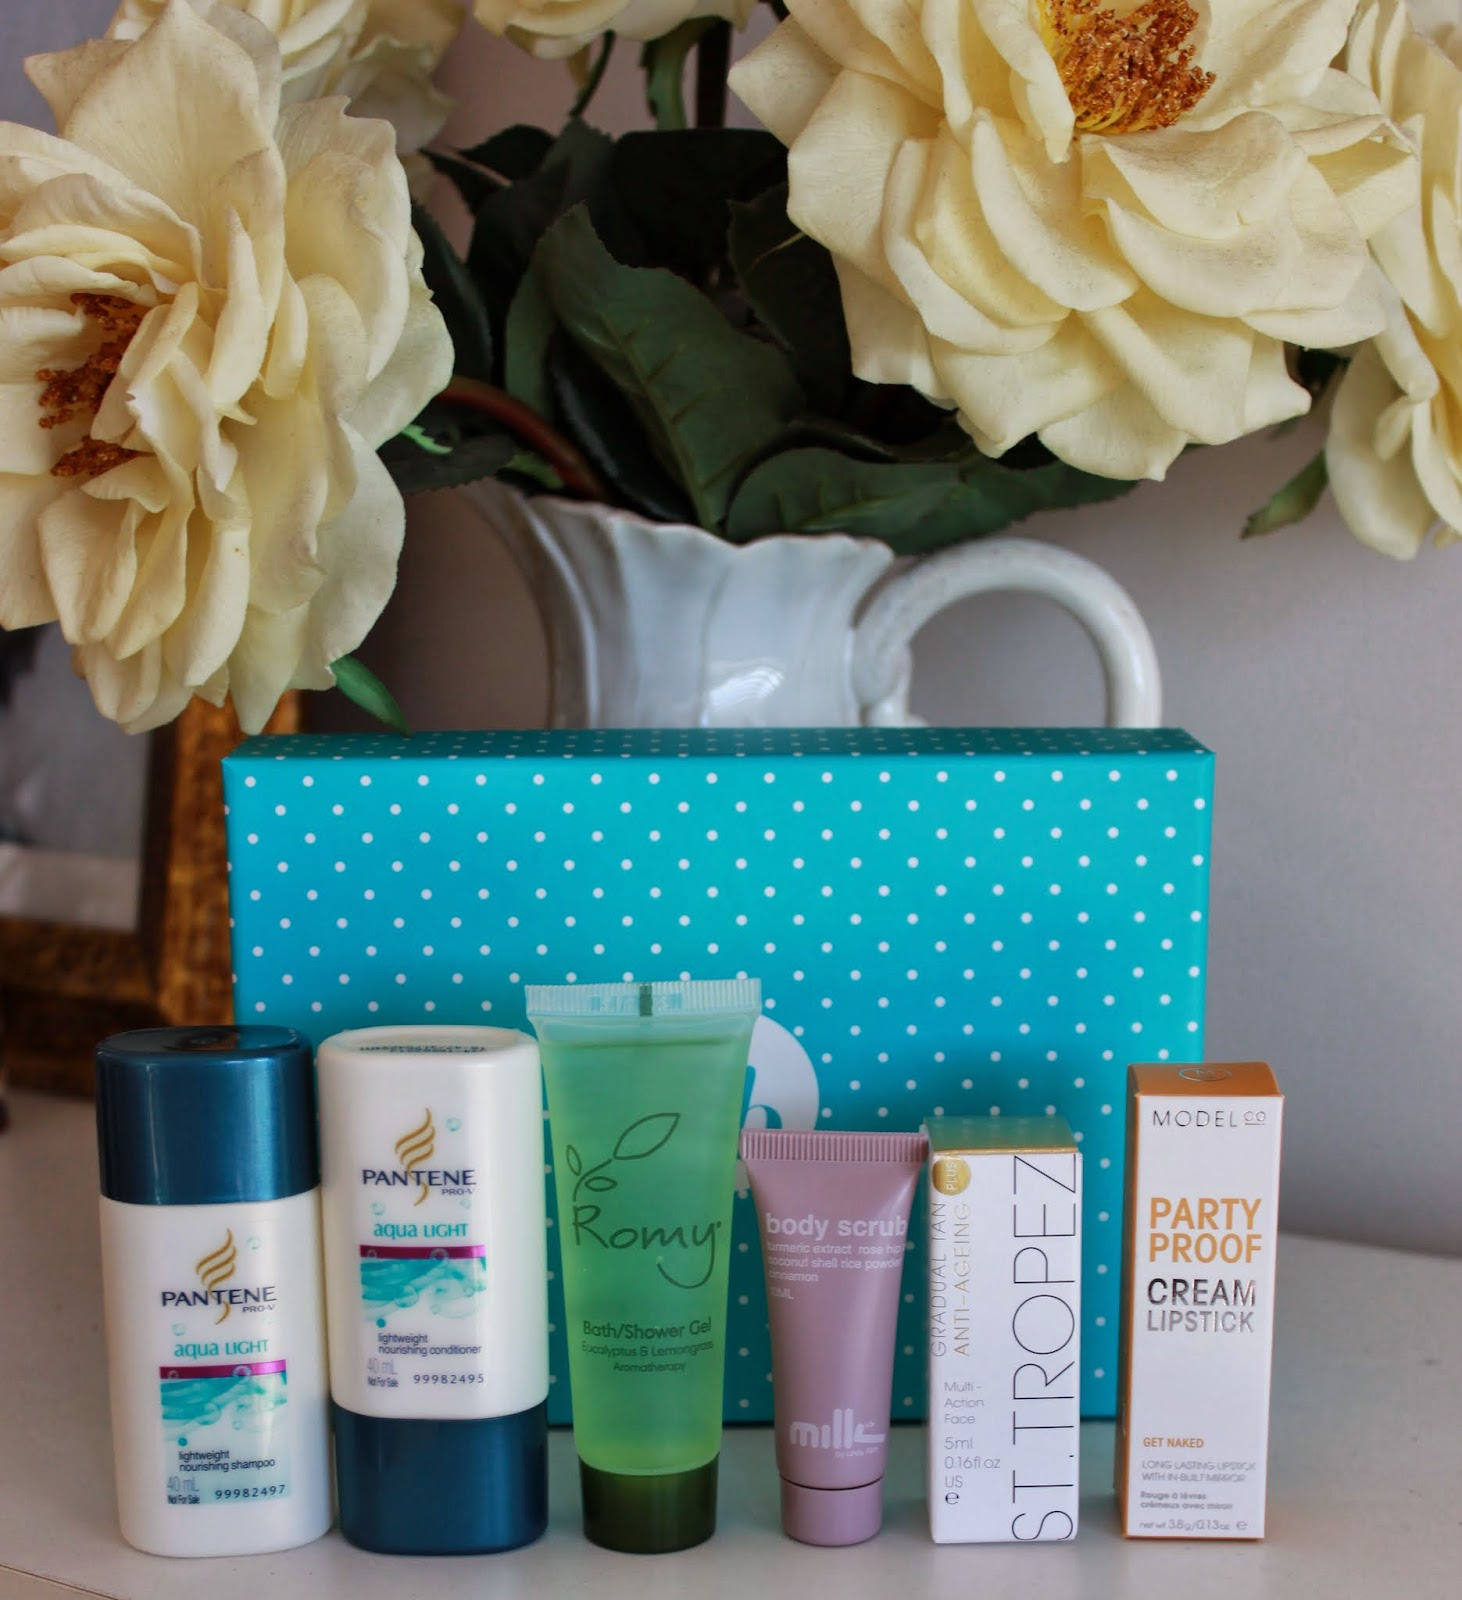 Beauty Subscription Service, Pantene, Bellabox, Makeup, Modelco